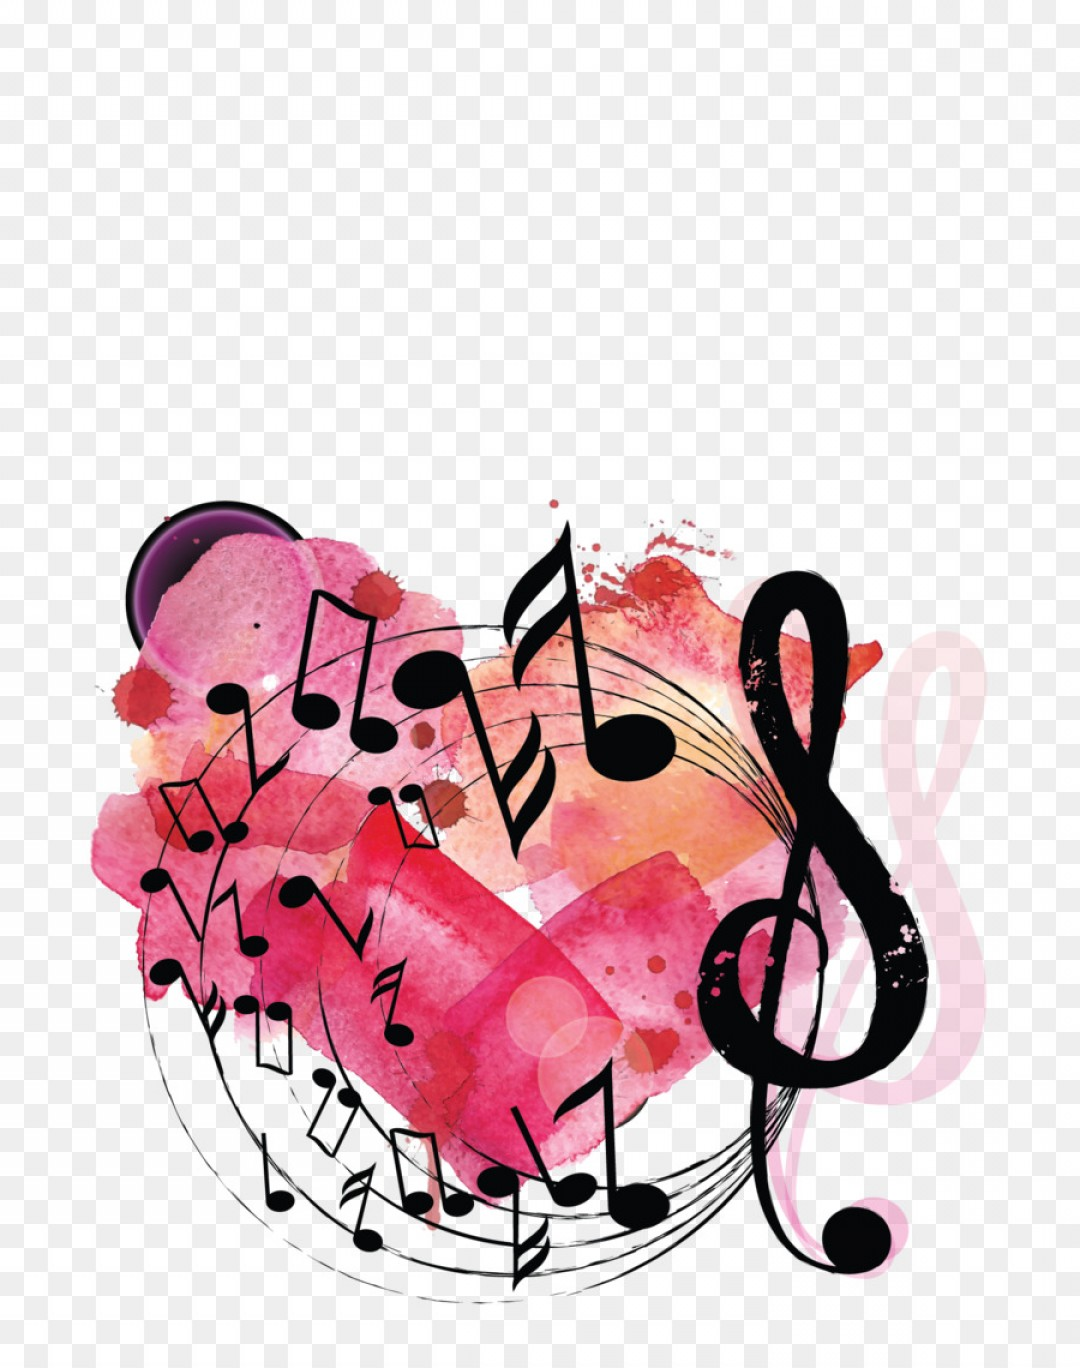 Free Musical Notes Transparent Background, Download Free Clip Art ... clip